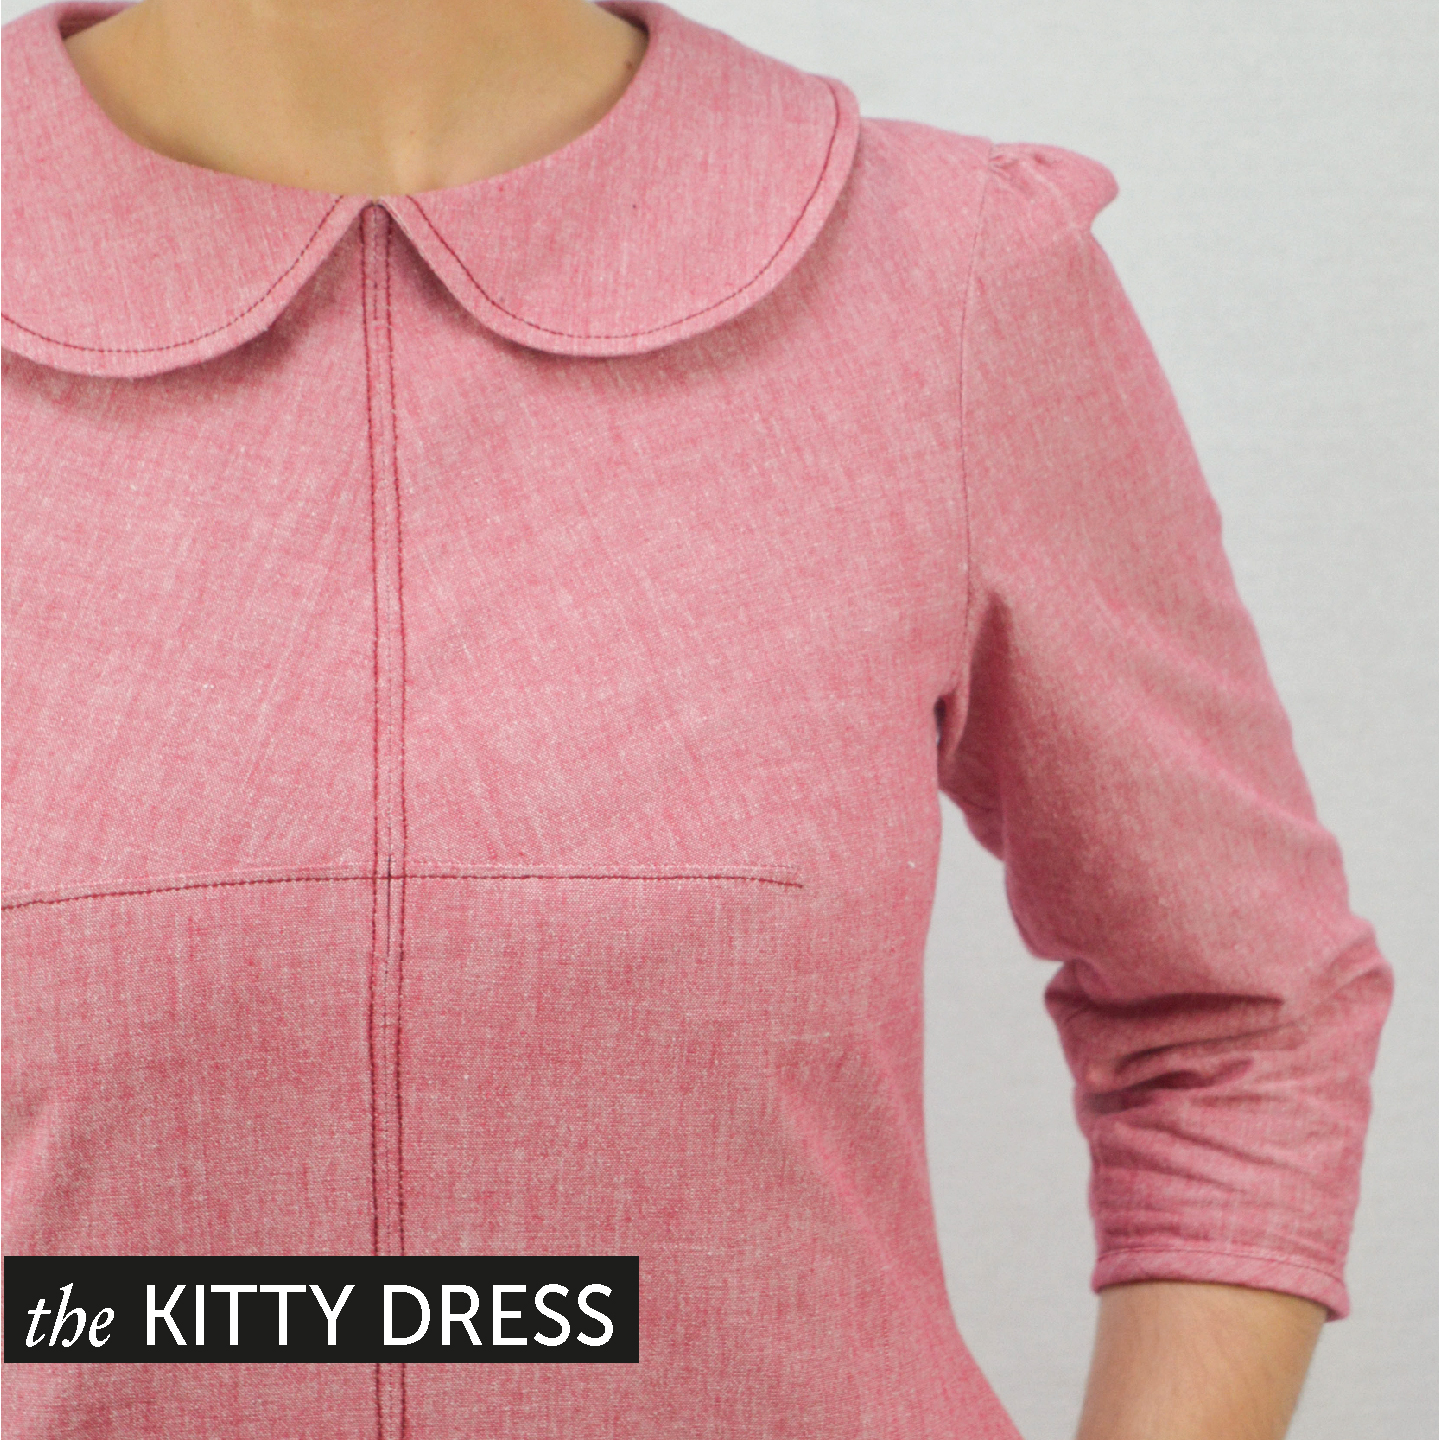 The Kitty Dress - a Maven Pattern